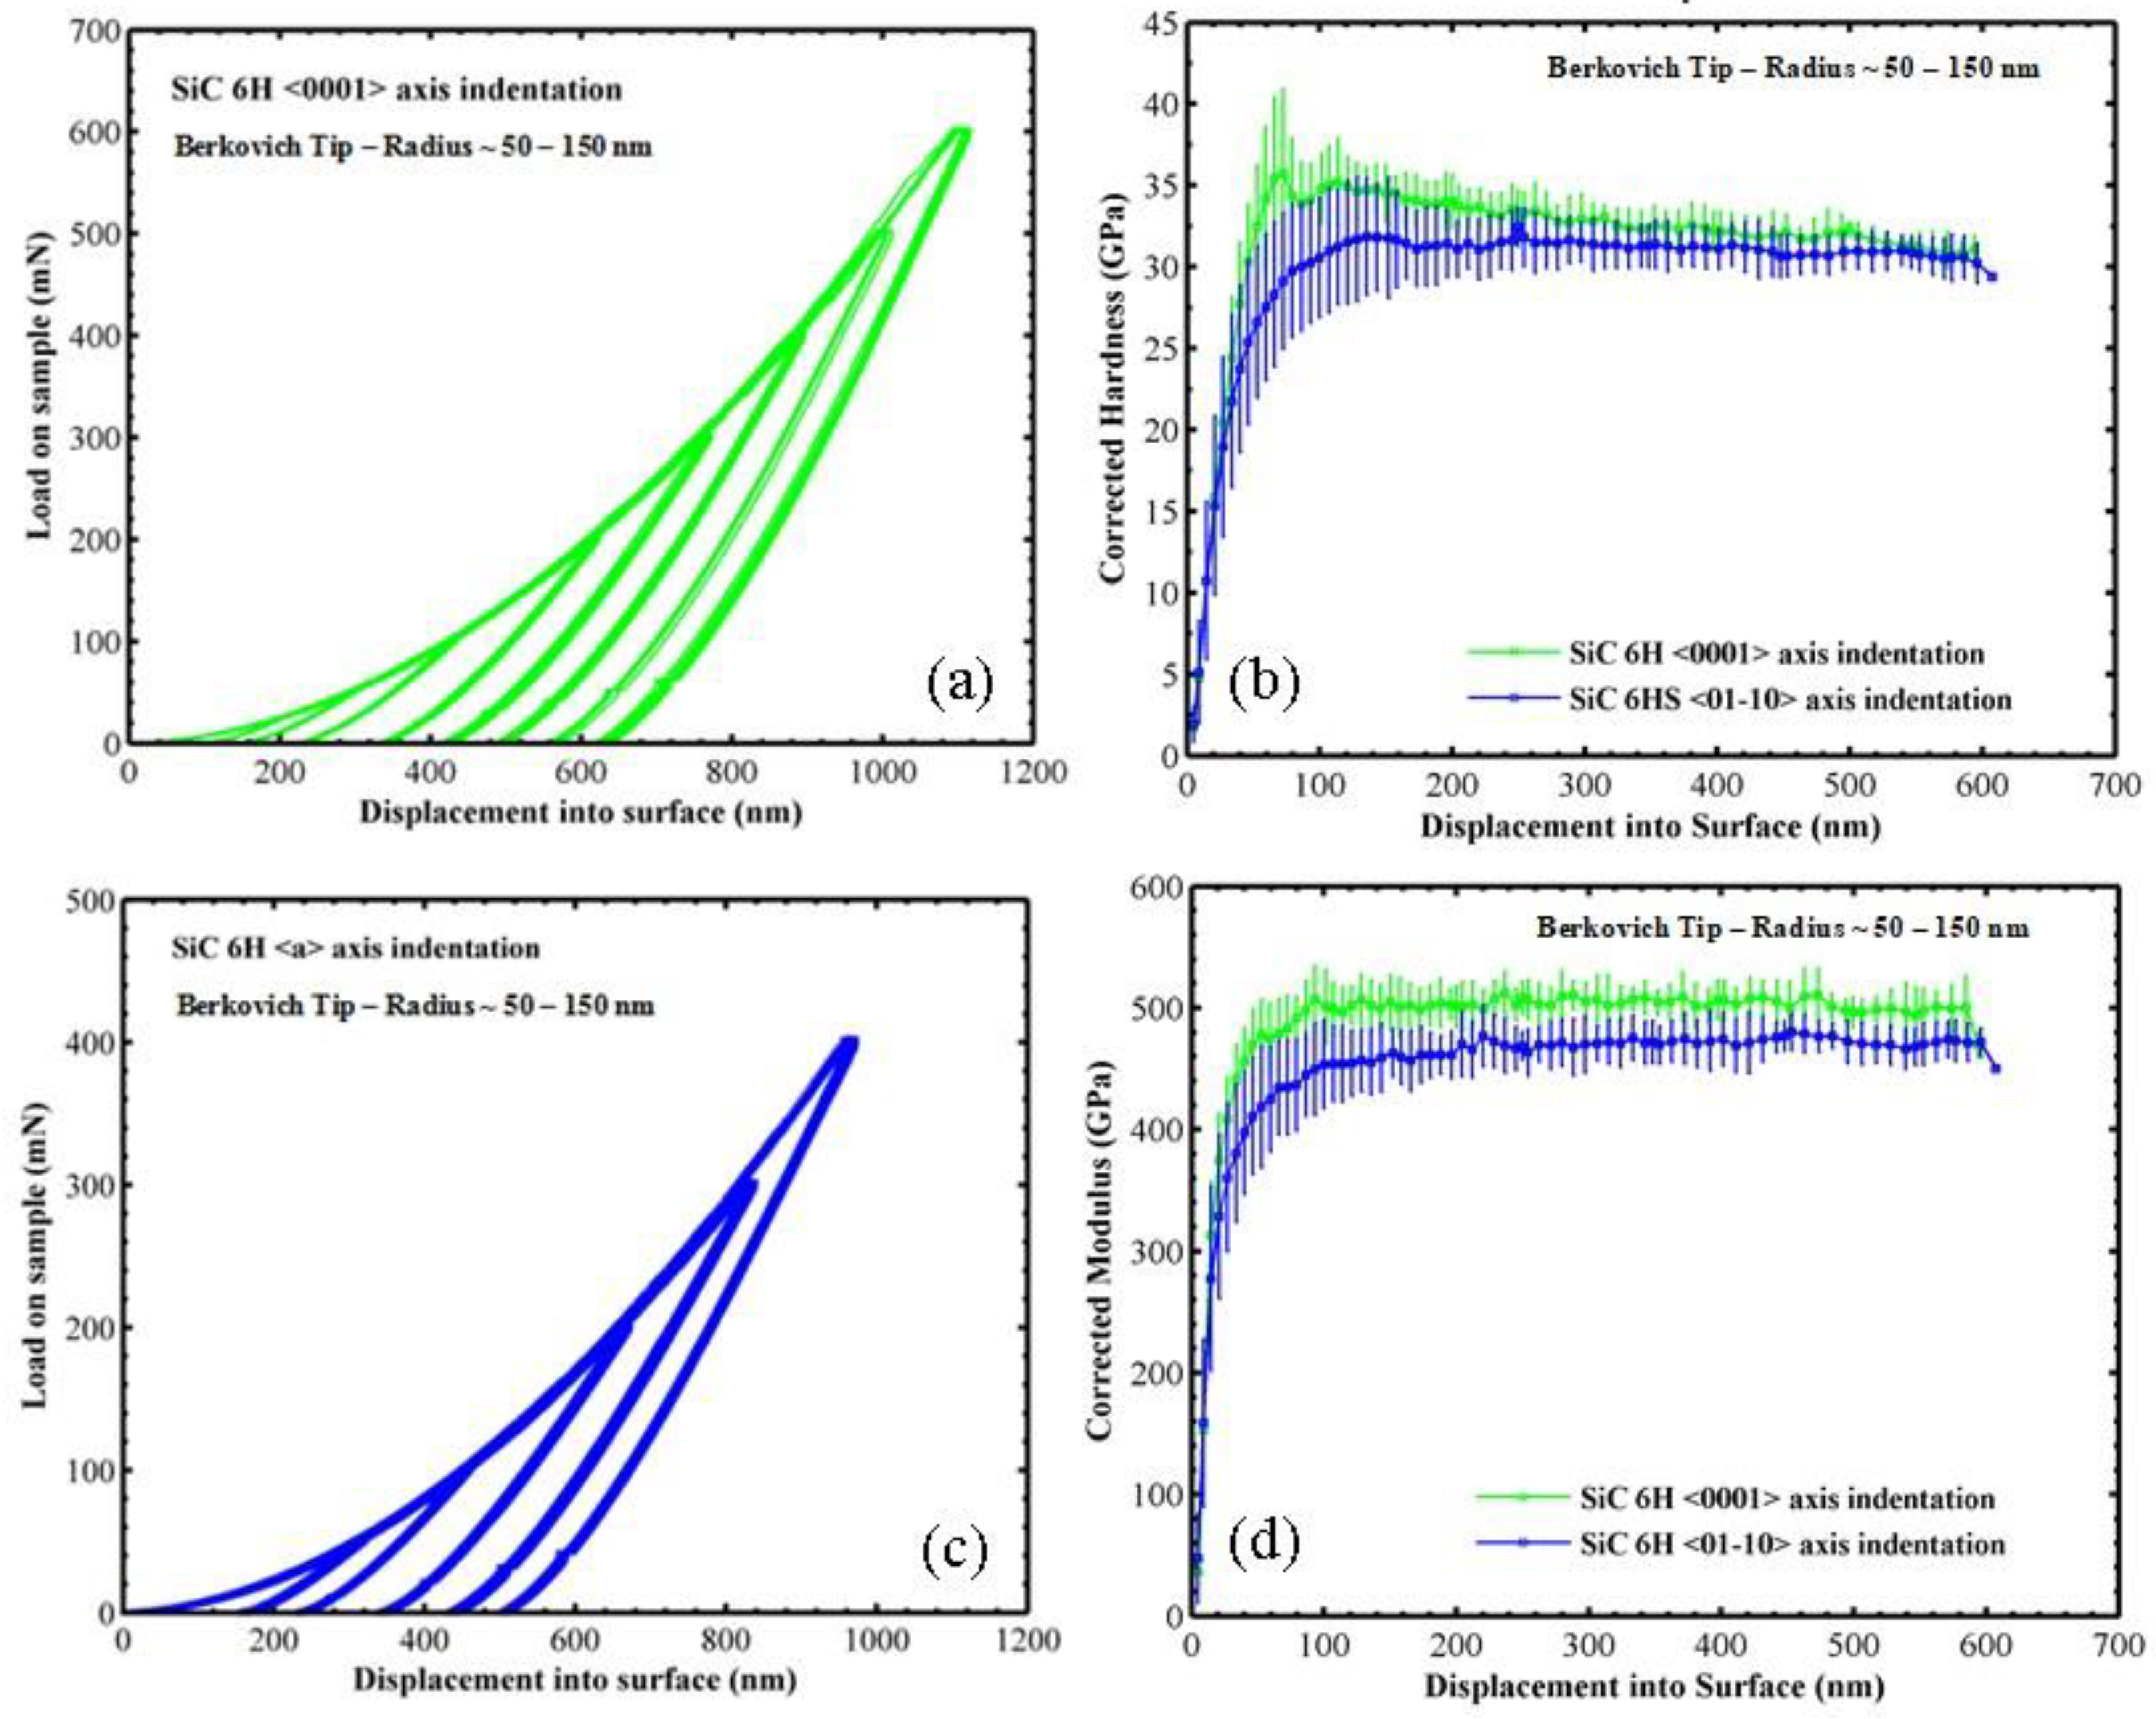 Ceramics | Free Full-Text | Fracture Toughness Evaluation and